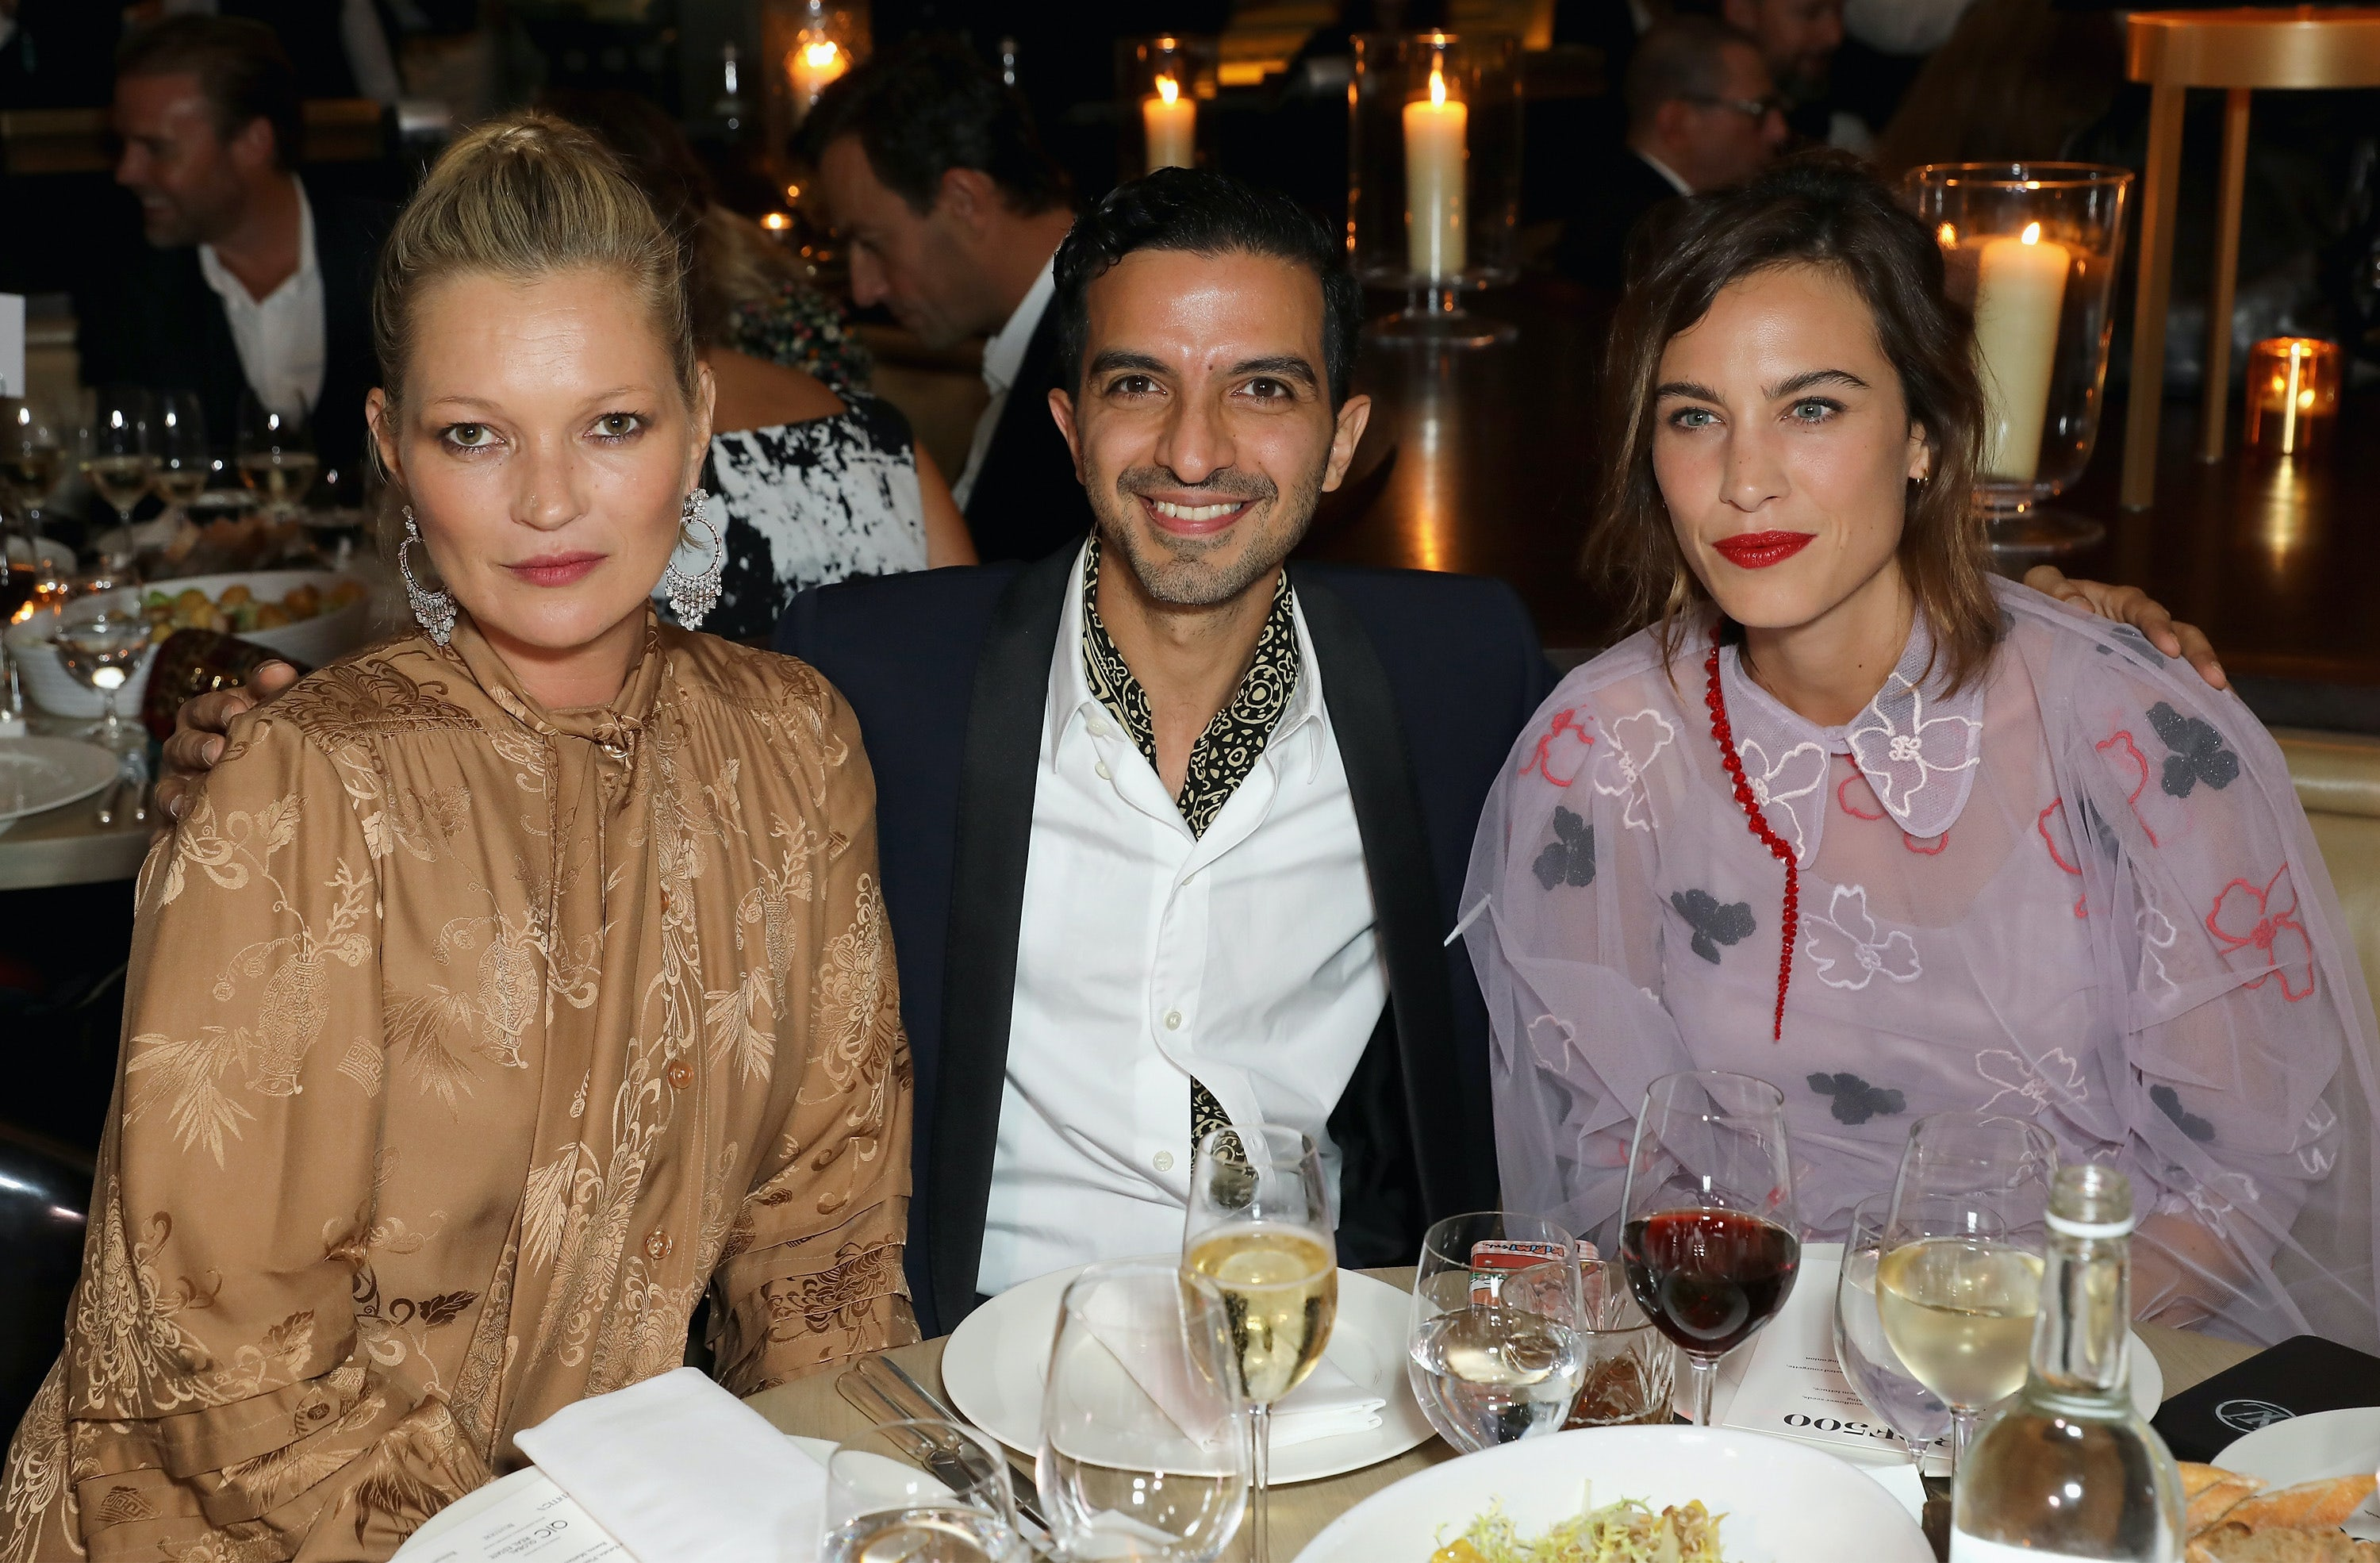 Kate Moss, BoF founder and CEO Imran Amed and Alexa Chung | Source: InDigital